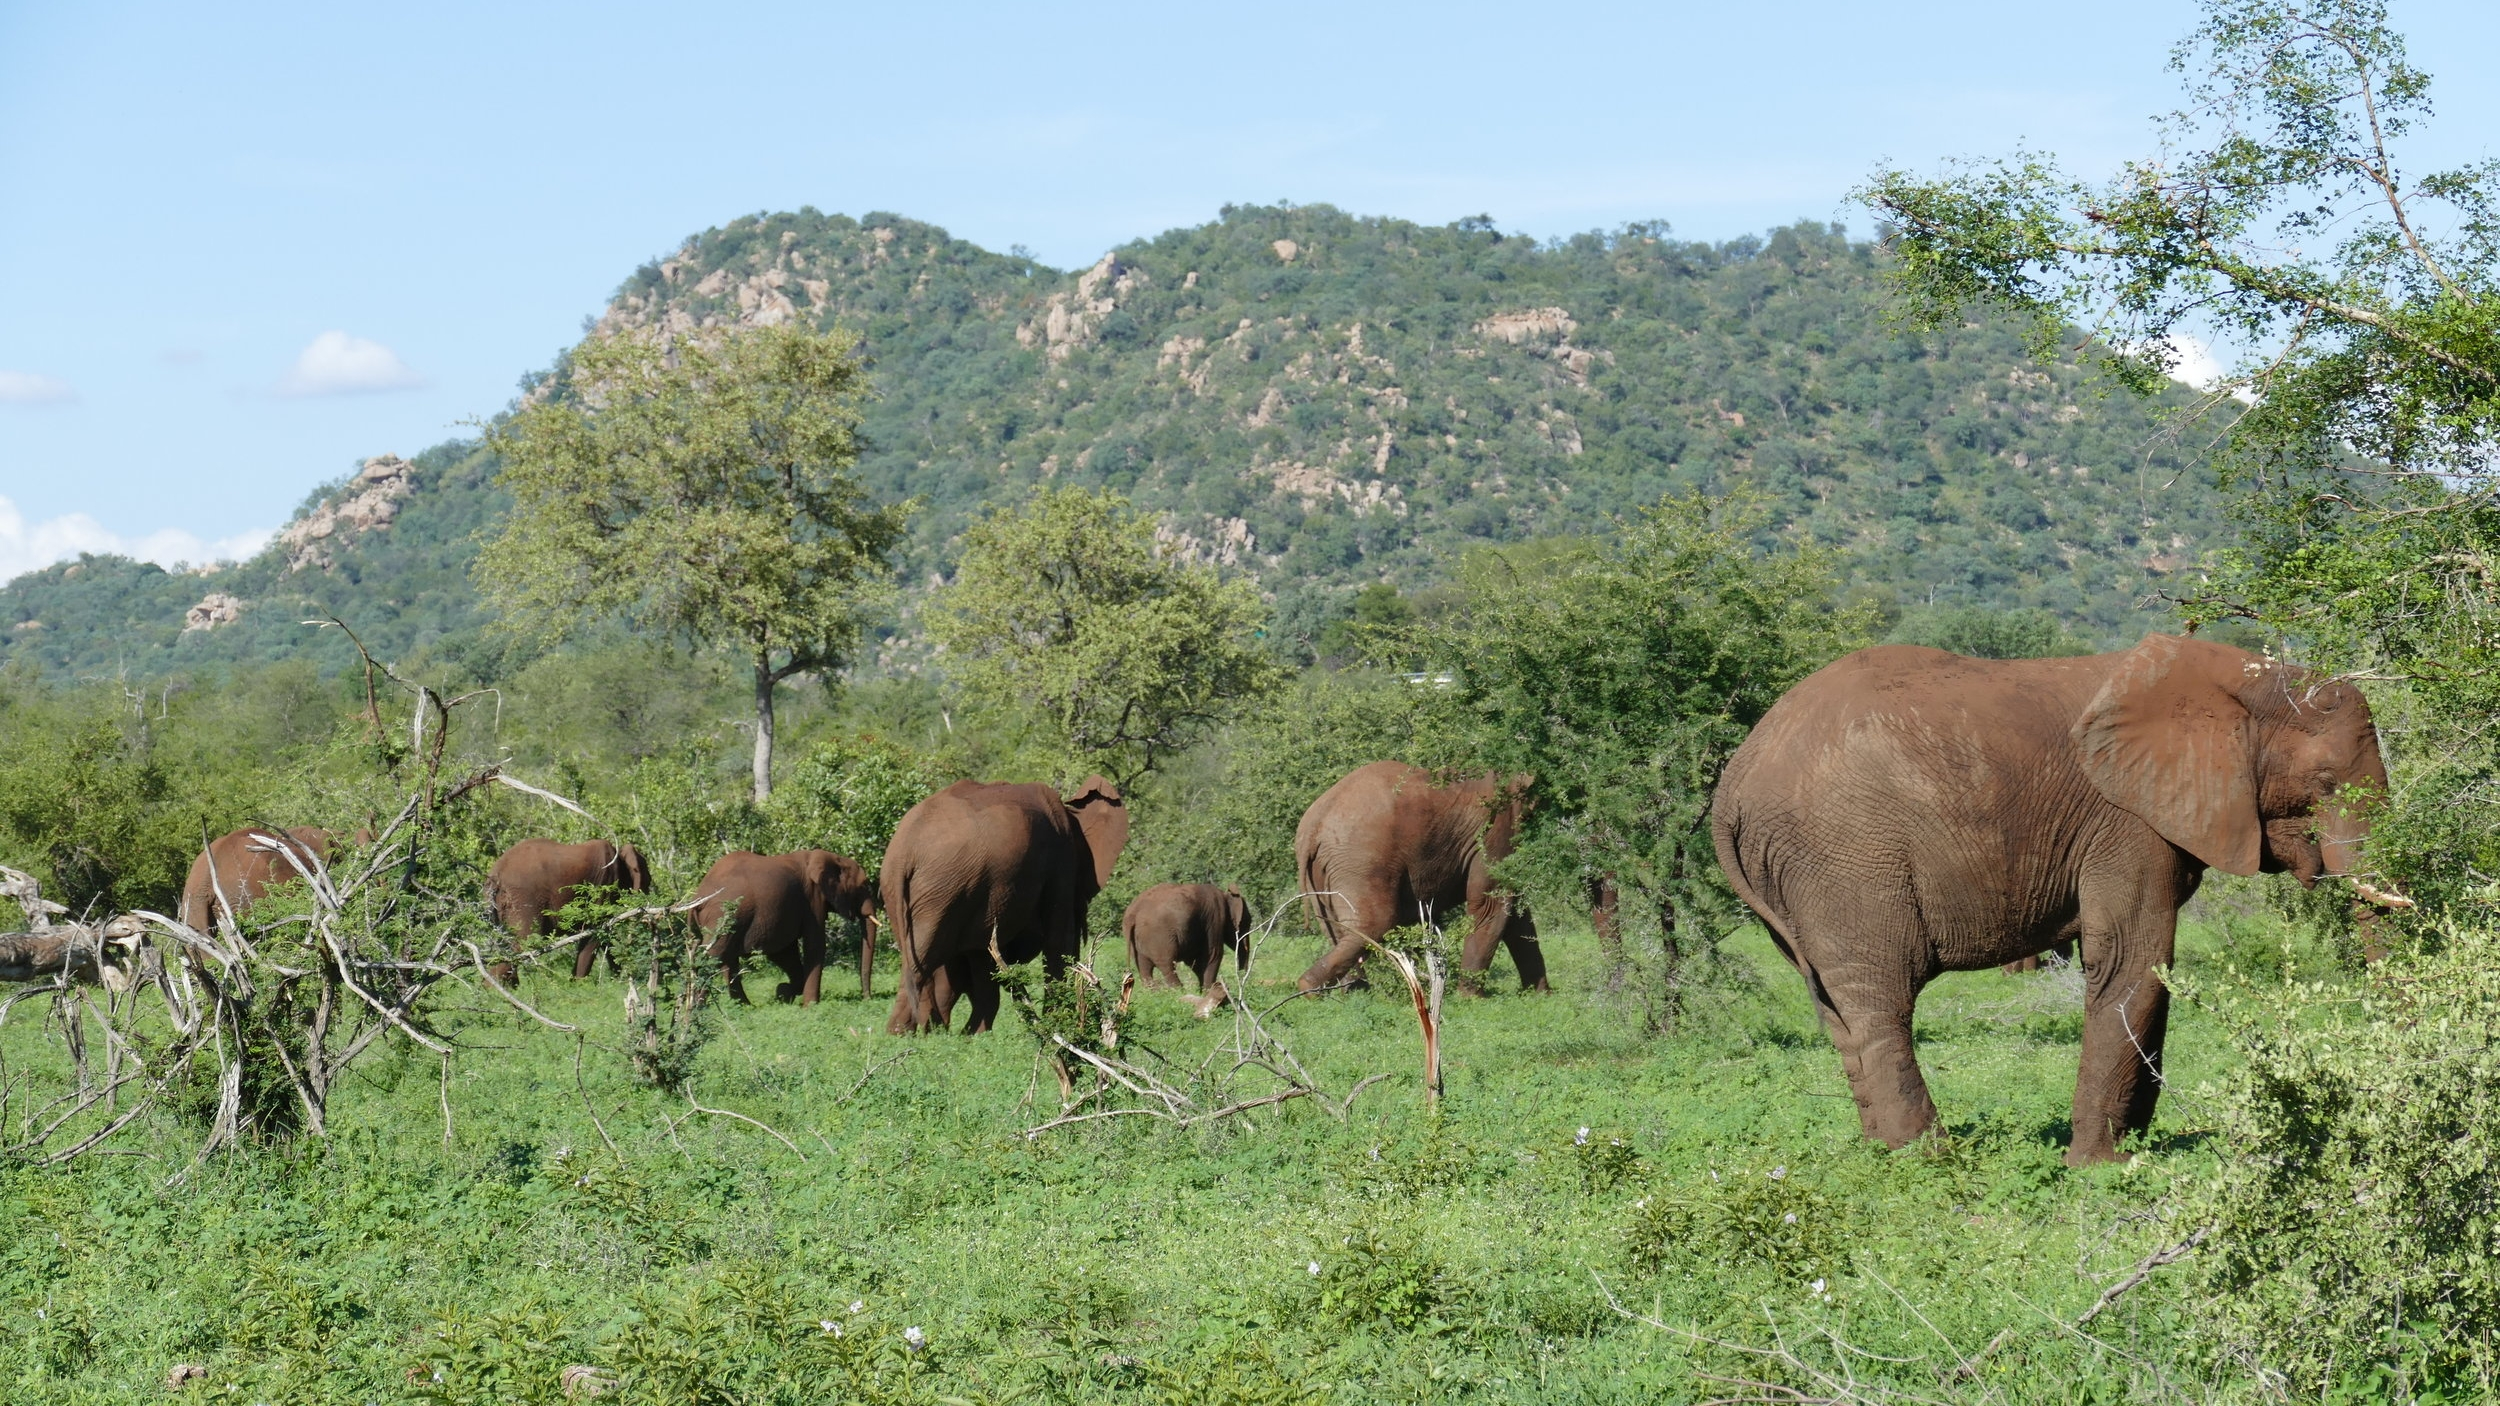 GAMe Drives are approx 2.5 - 3 Hrs in duration and take place on grietjie as well as the neighbouring reserves